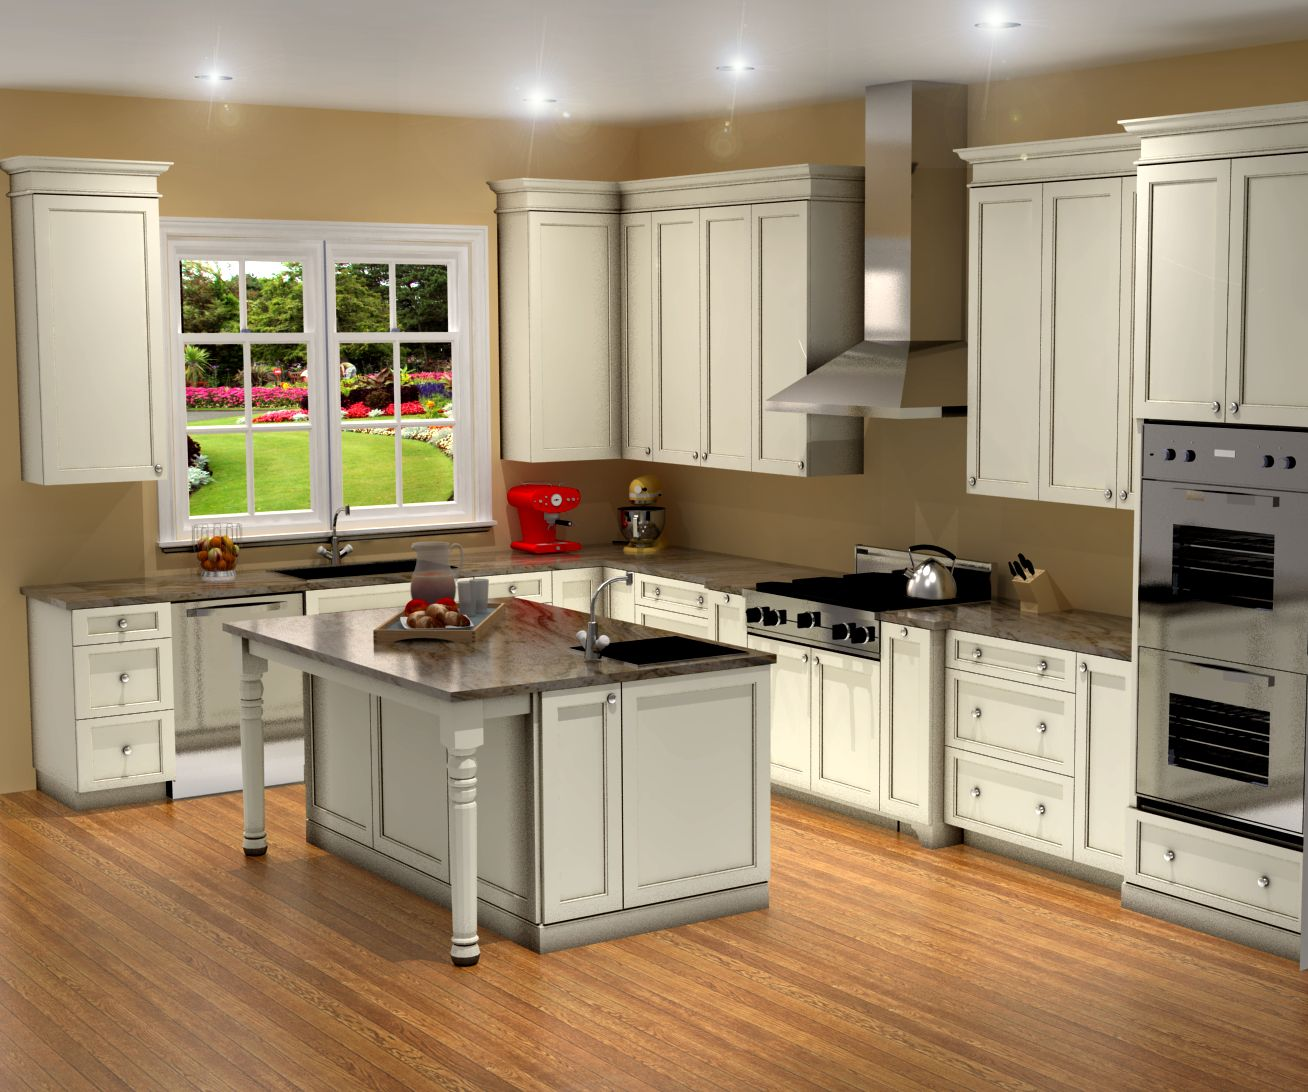 Traditional white kitchen design 3d rendering nick for Kitchen designs white